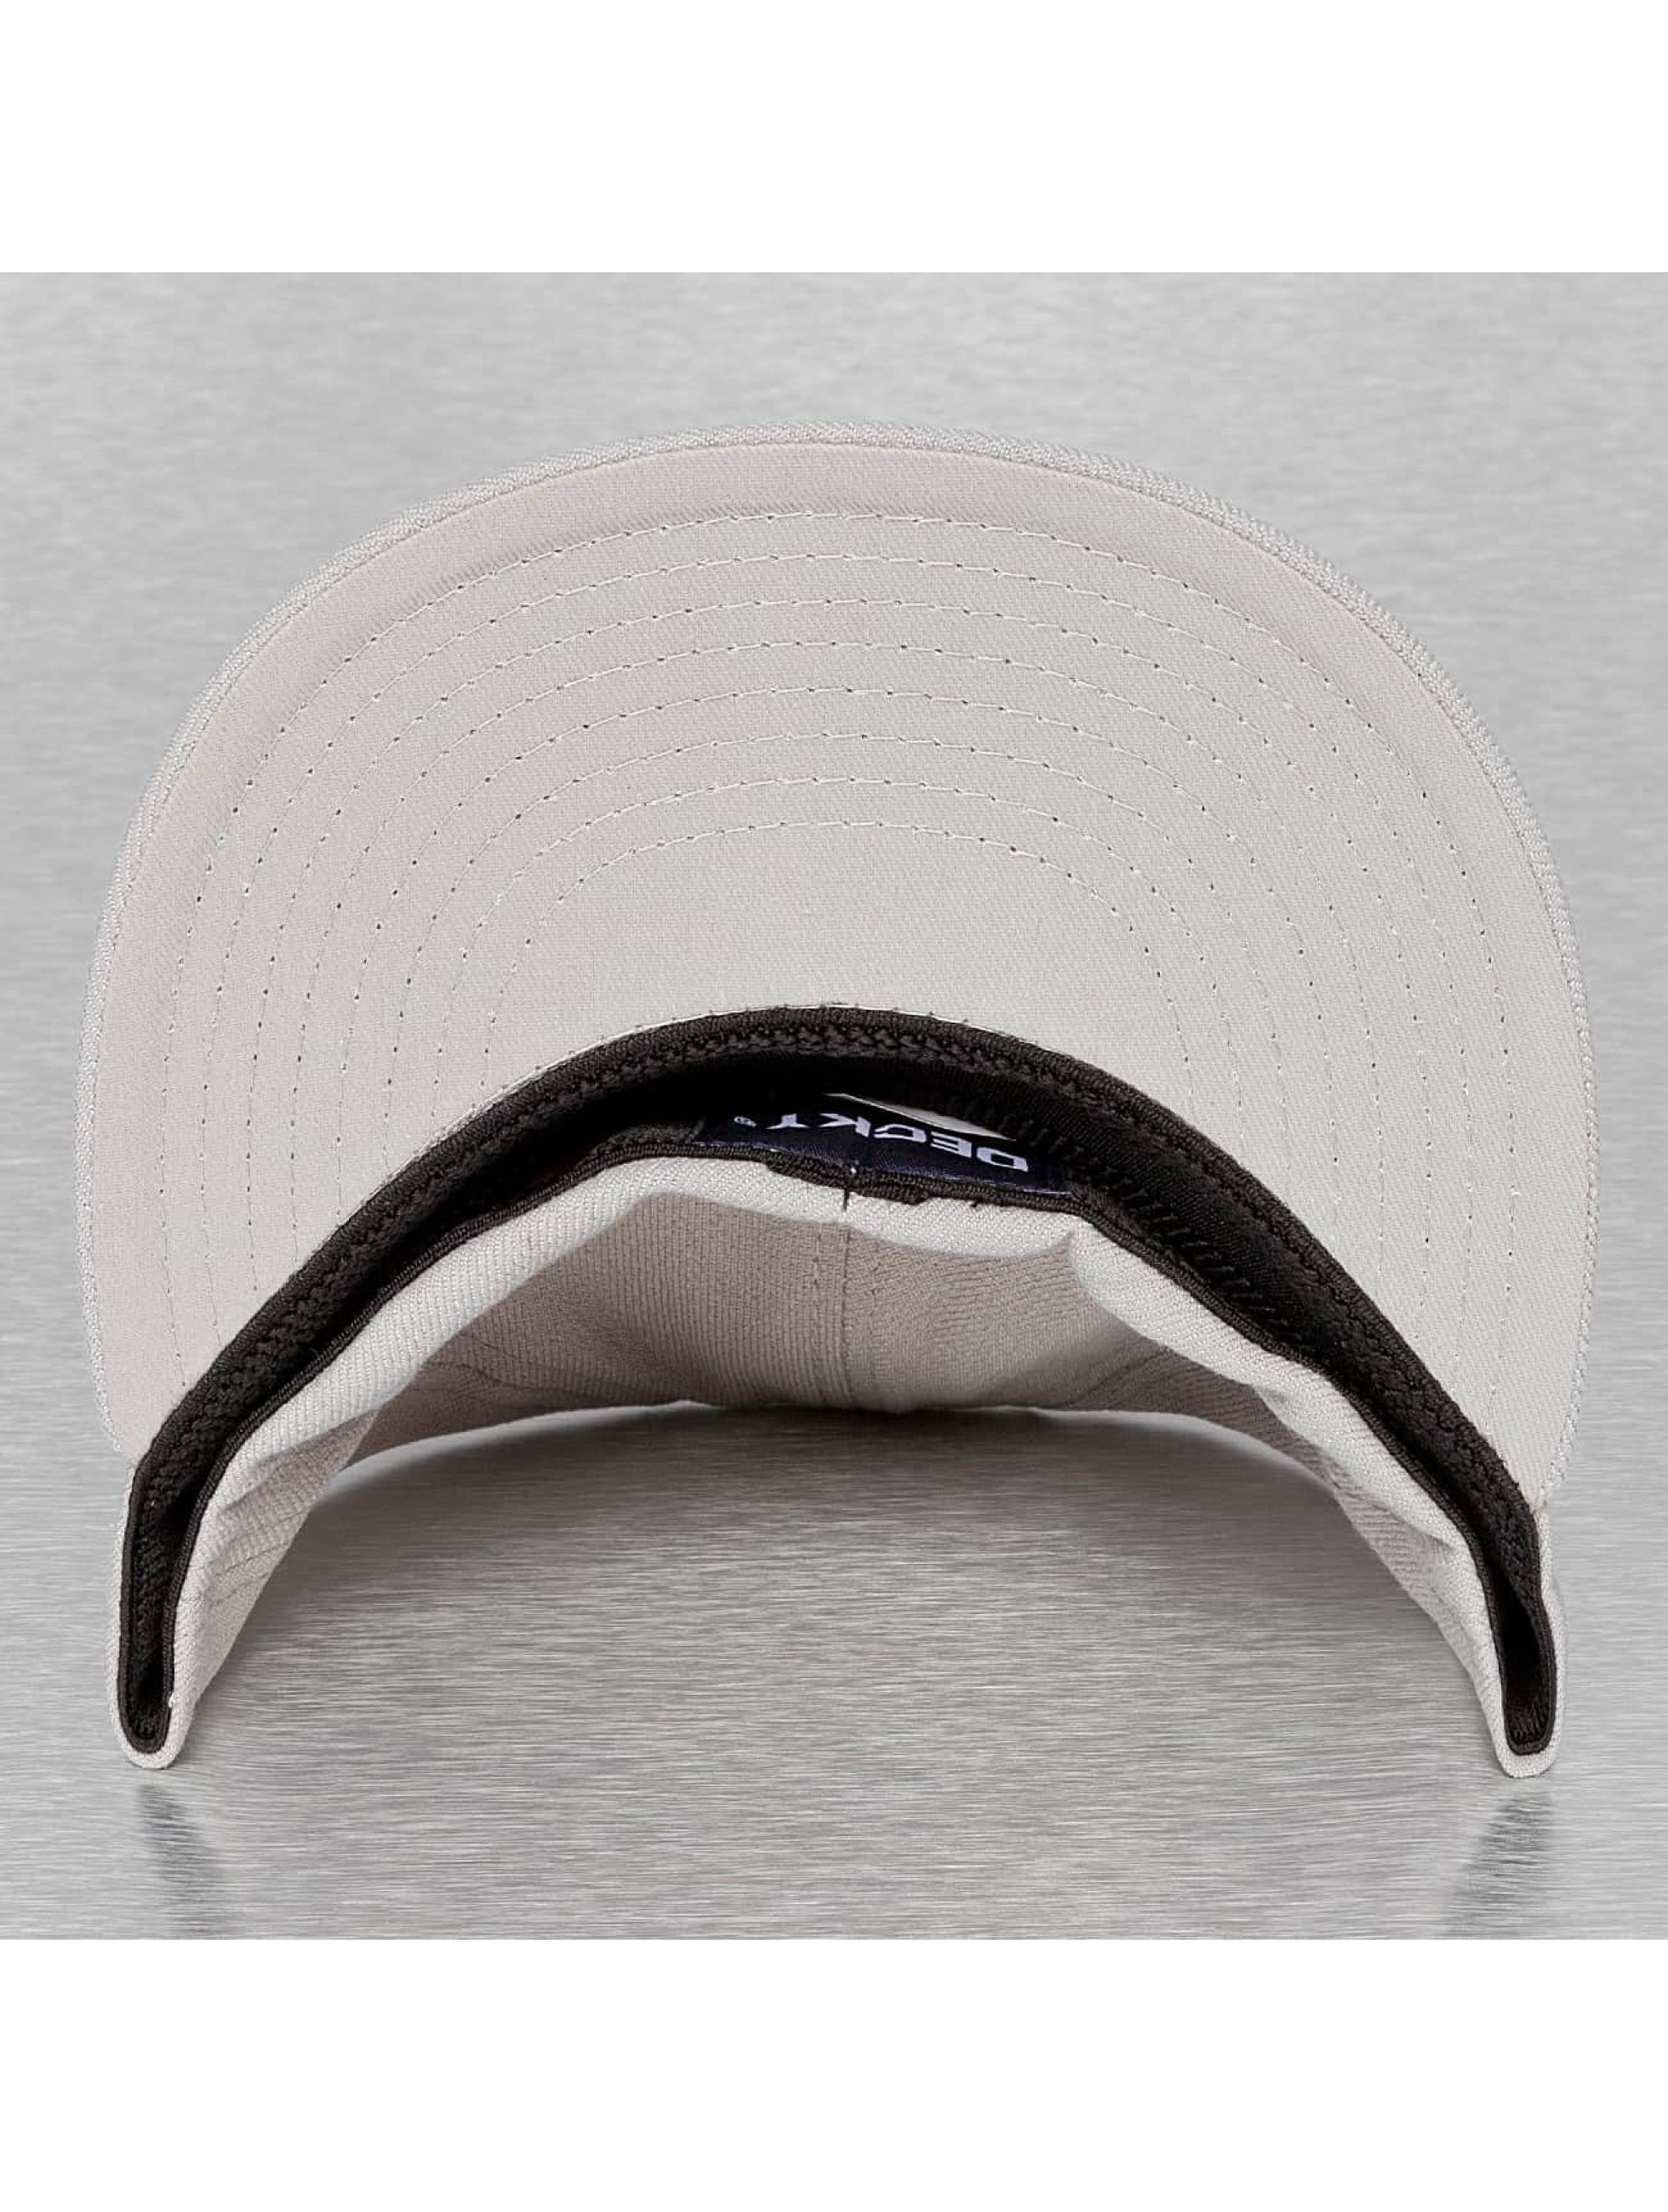 Decky USA Flexfitted Cap Flat Bill grau